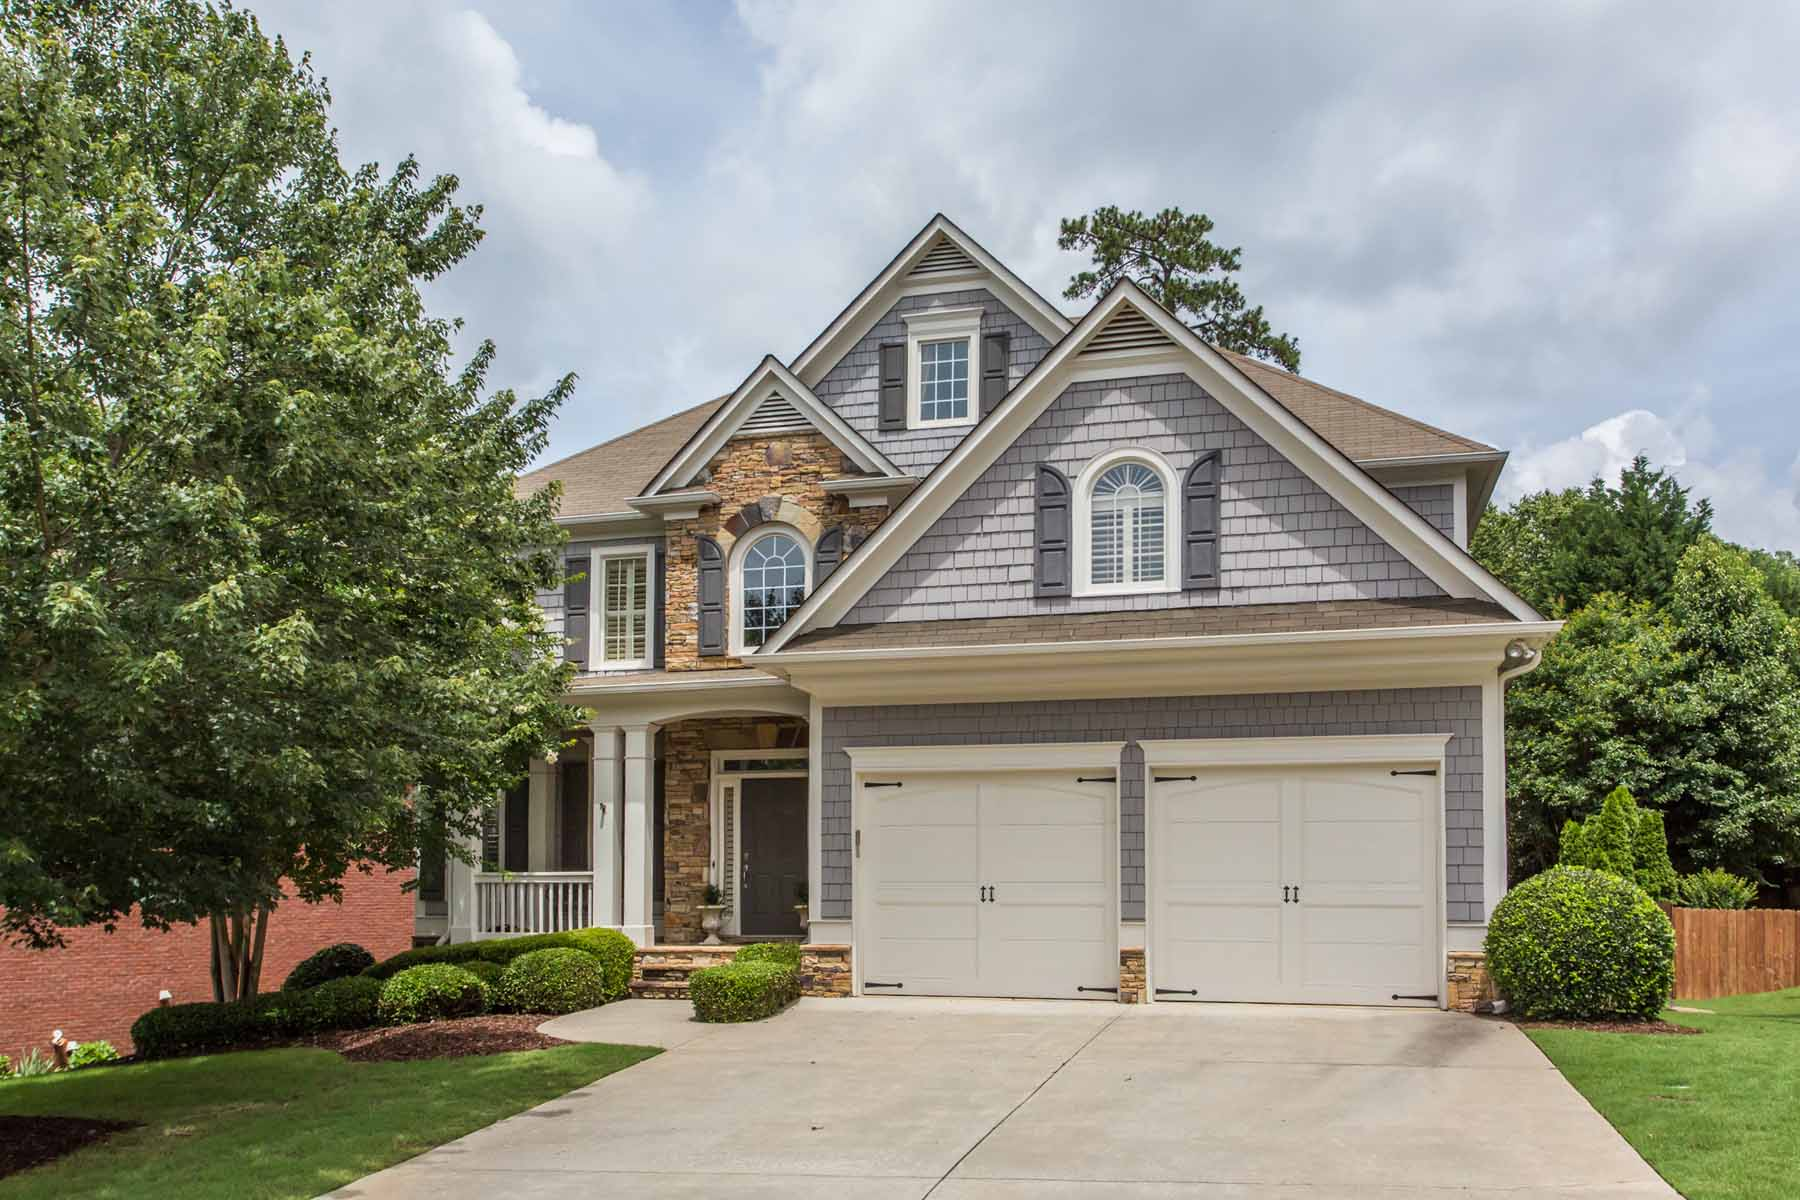 Single Family Home for Sale at Impeccably styled executive home 1105 Cooper Oak Court, SE Smyrna, Georgia, 30082 United States